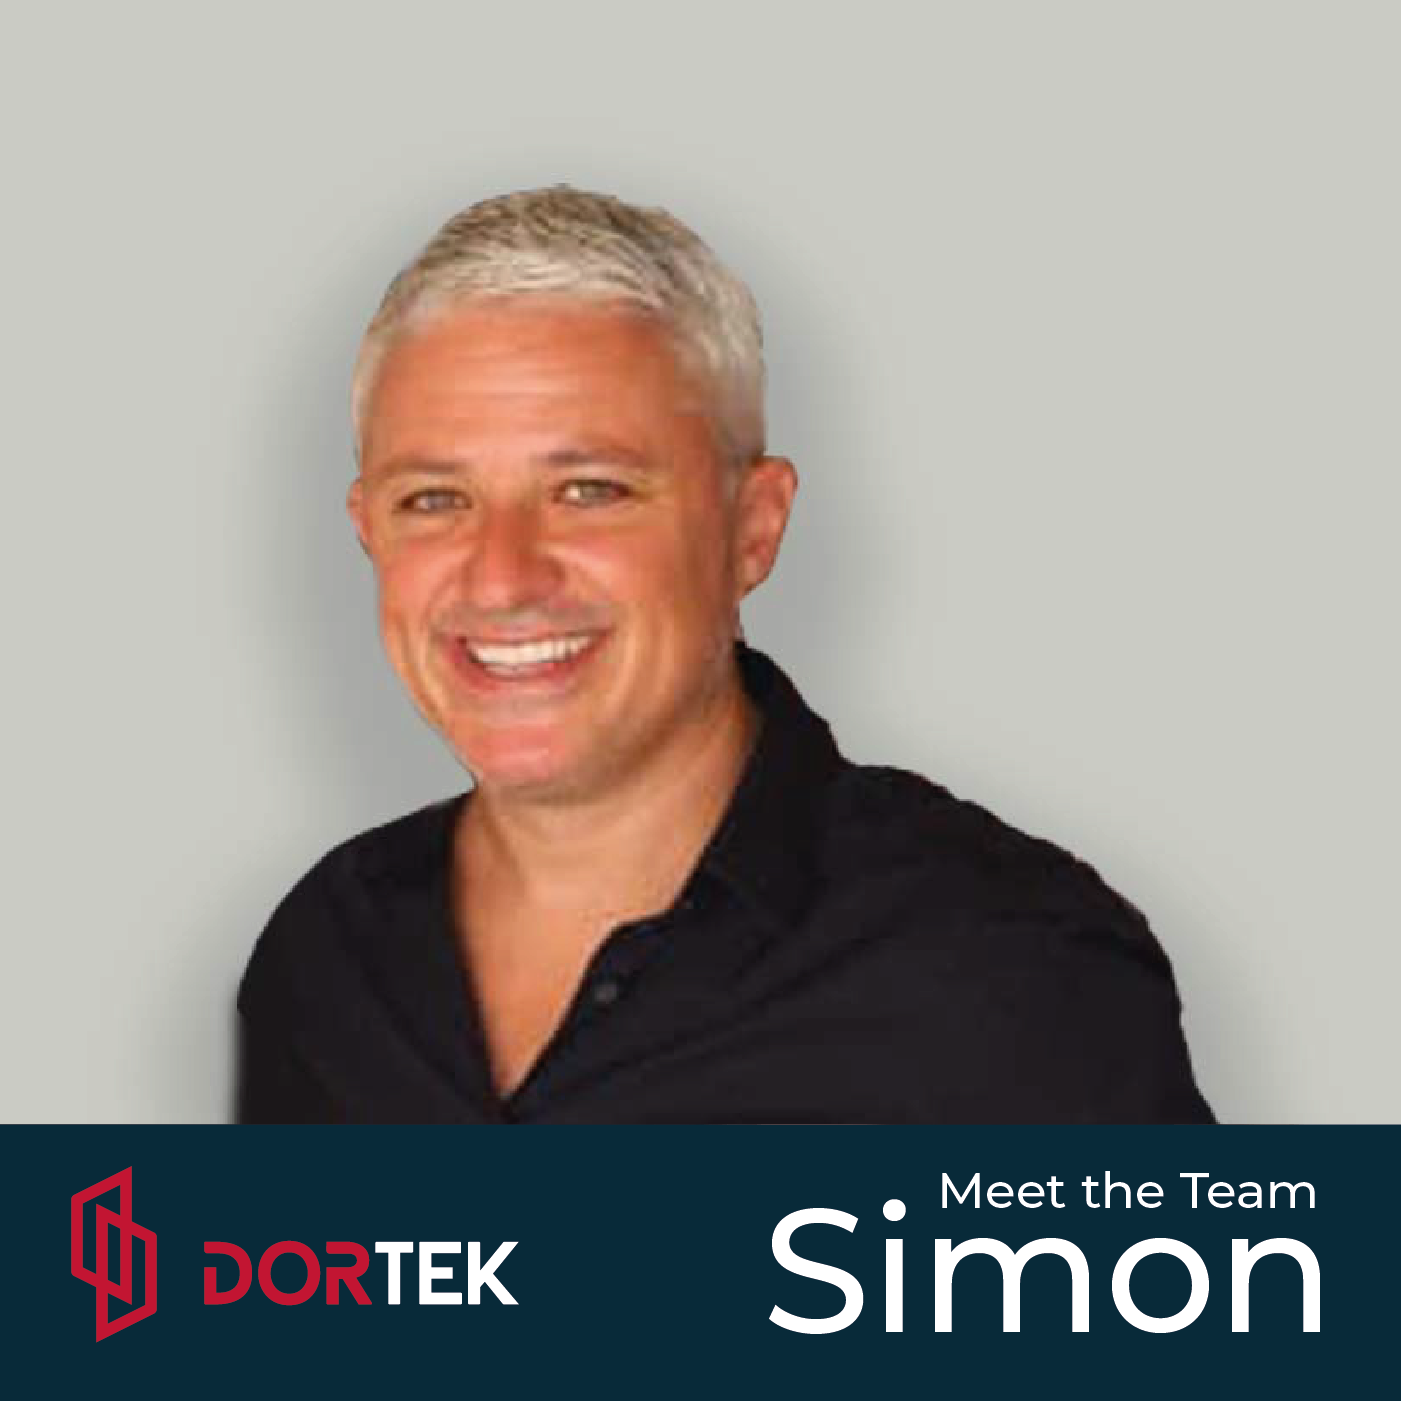 Meet our Sales and Business Development Manager for the APAC and MEA regions, Simon